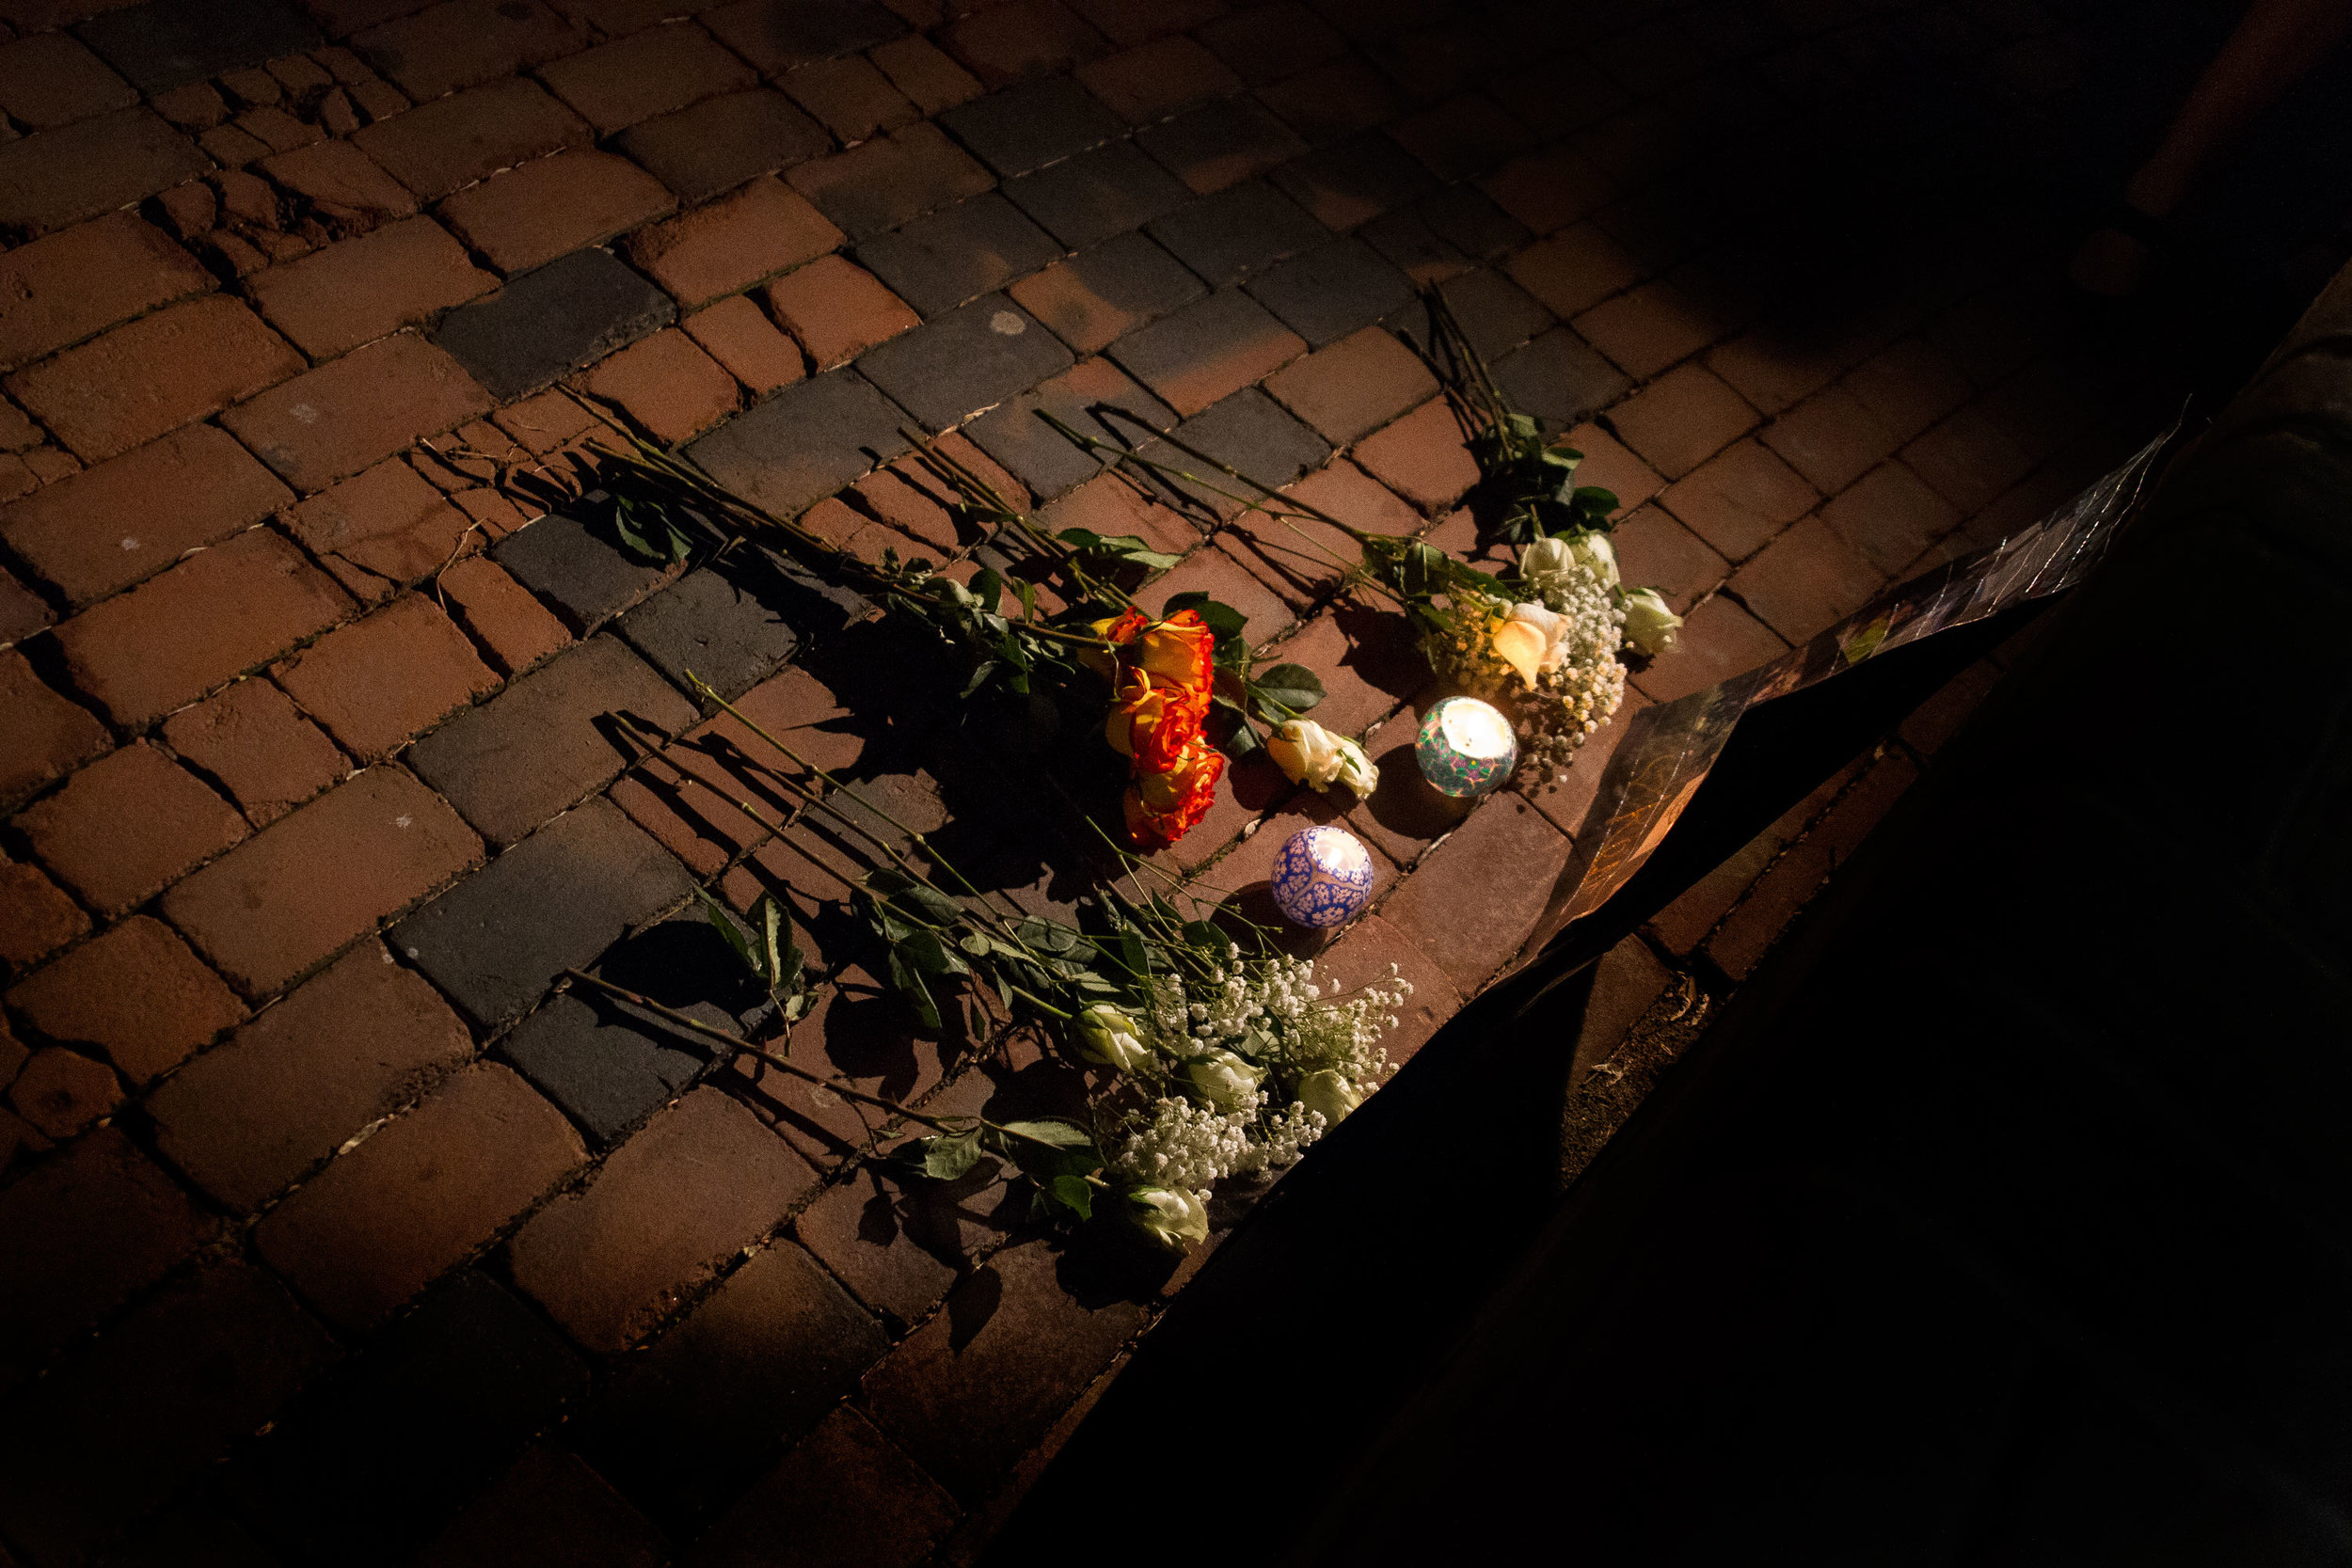 A small memorial is left at the front of a candlelight vigil for two Towson University students who died on March 31, 2012 in separate incidents.